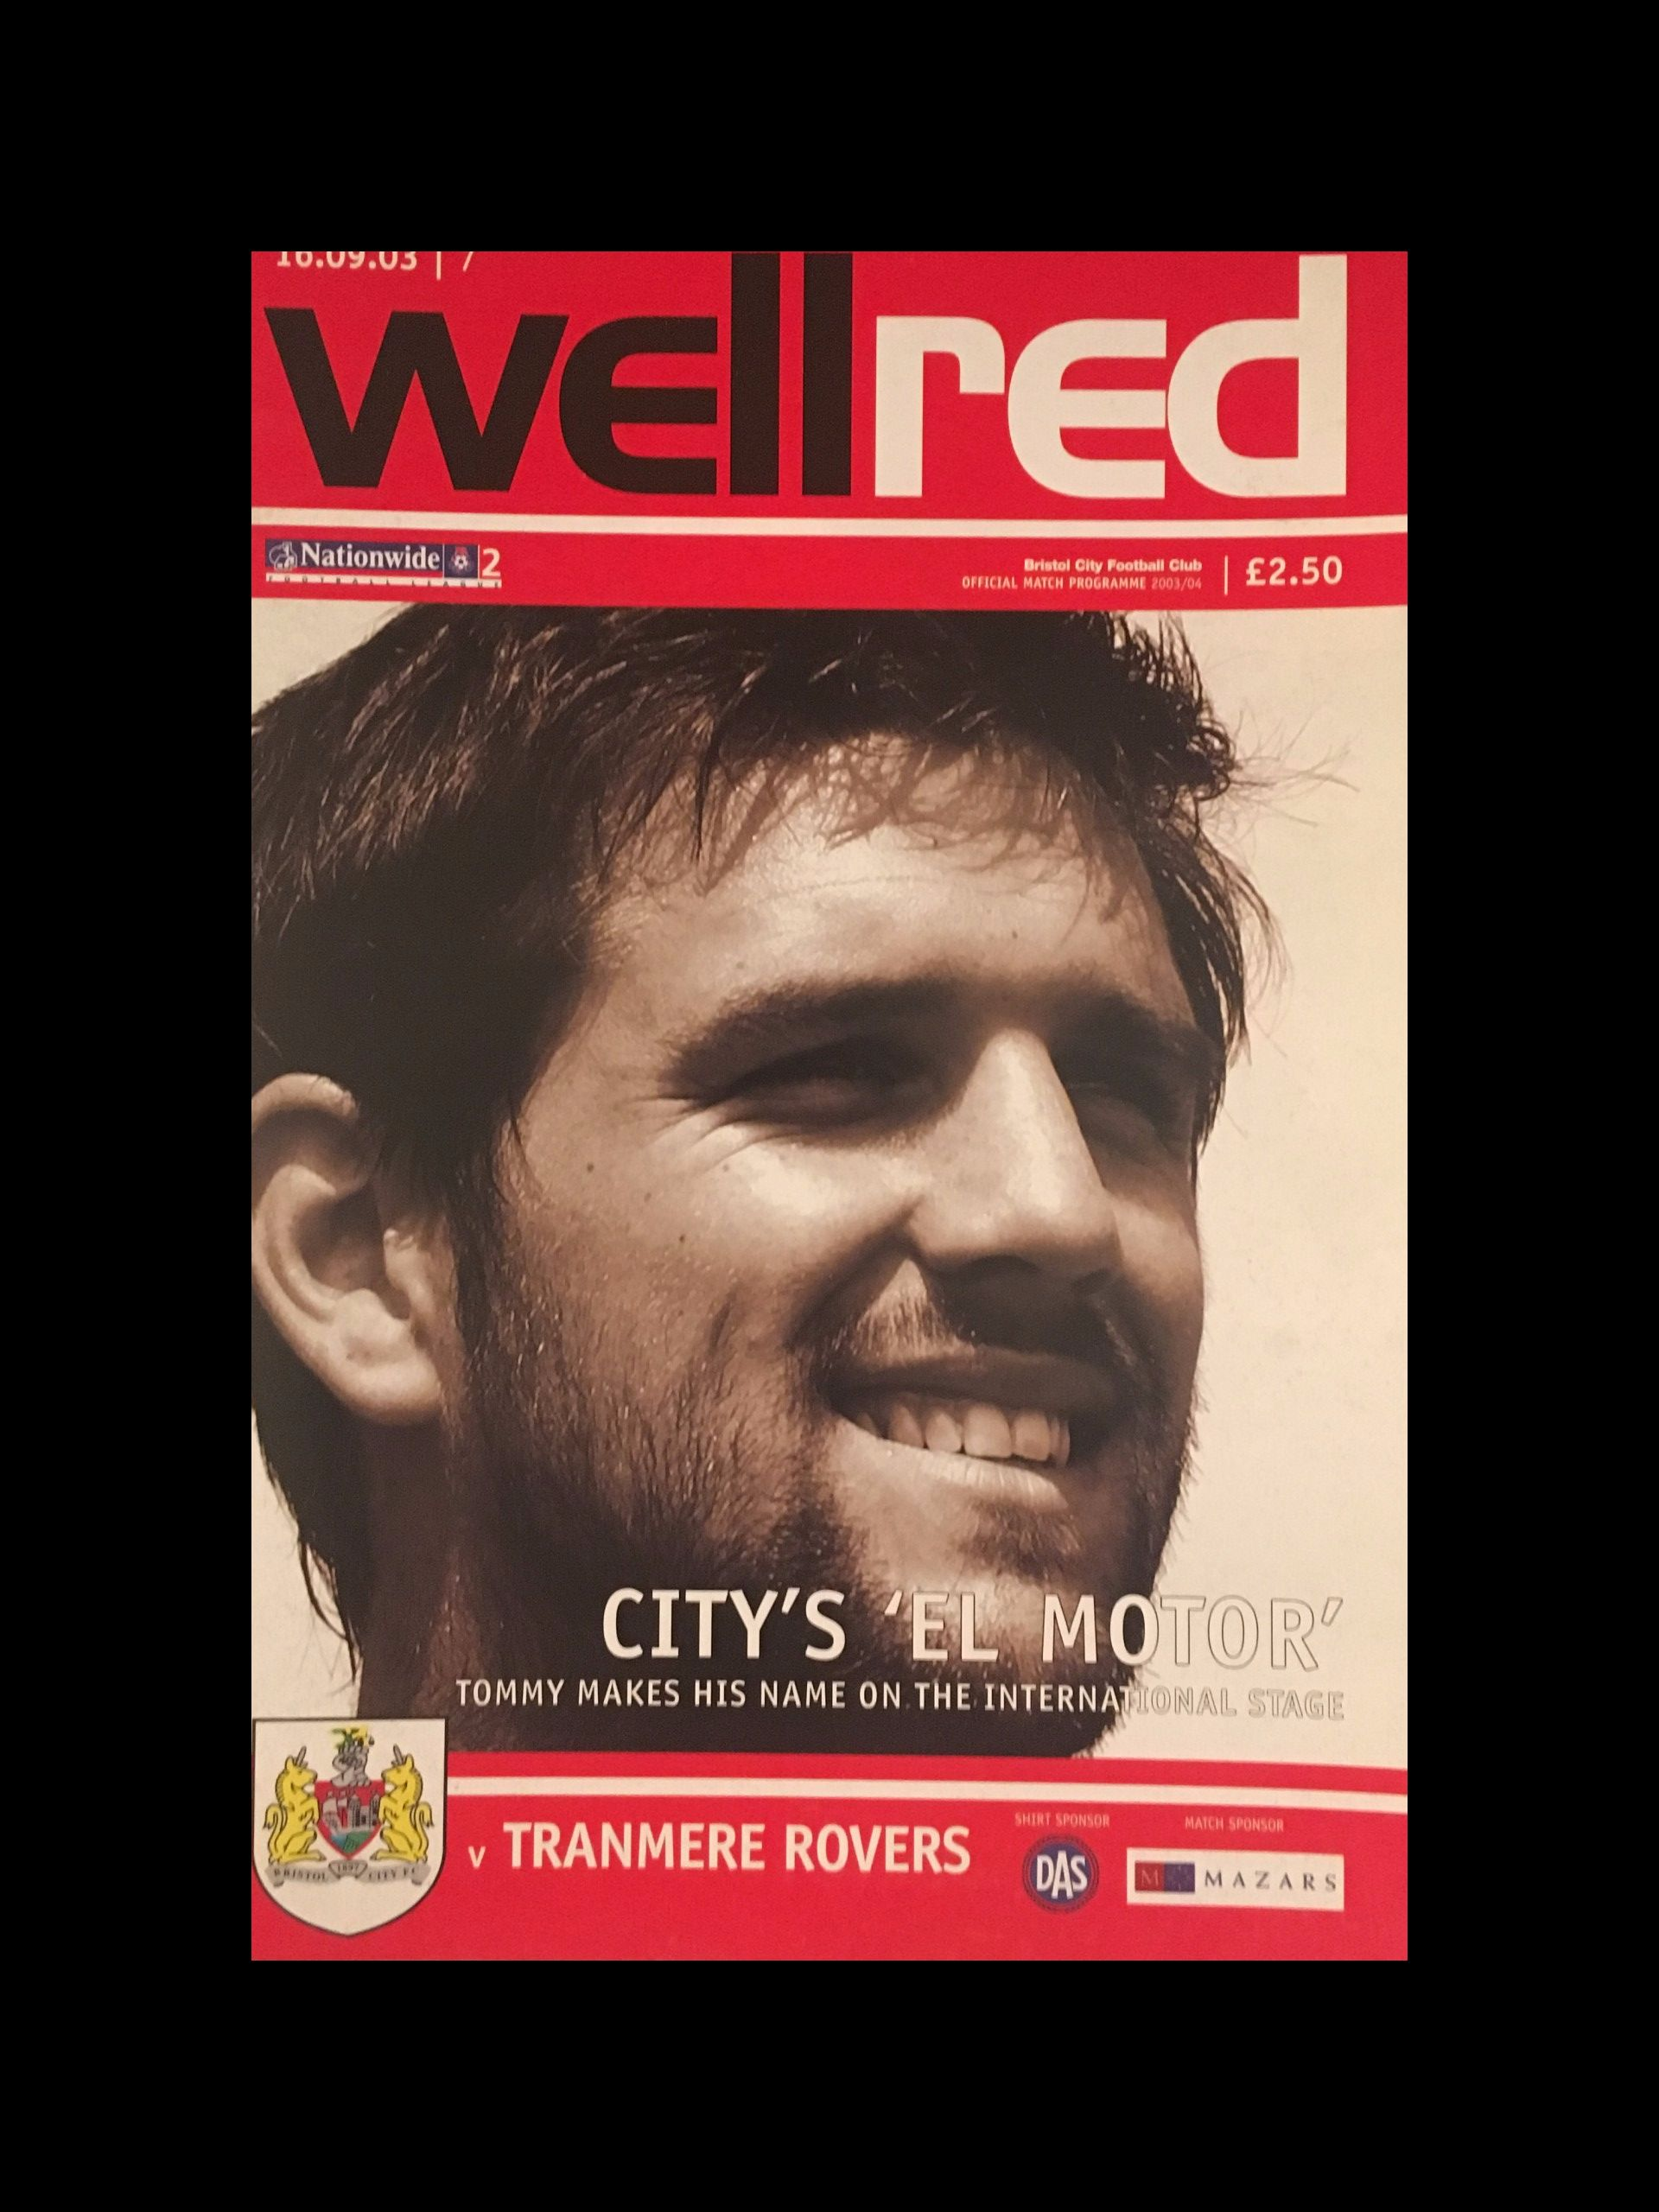 Bristol City v Tranmere Rovers 16-09-2003 Programme